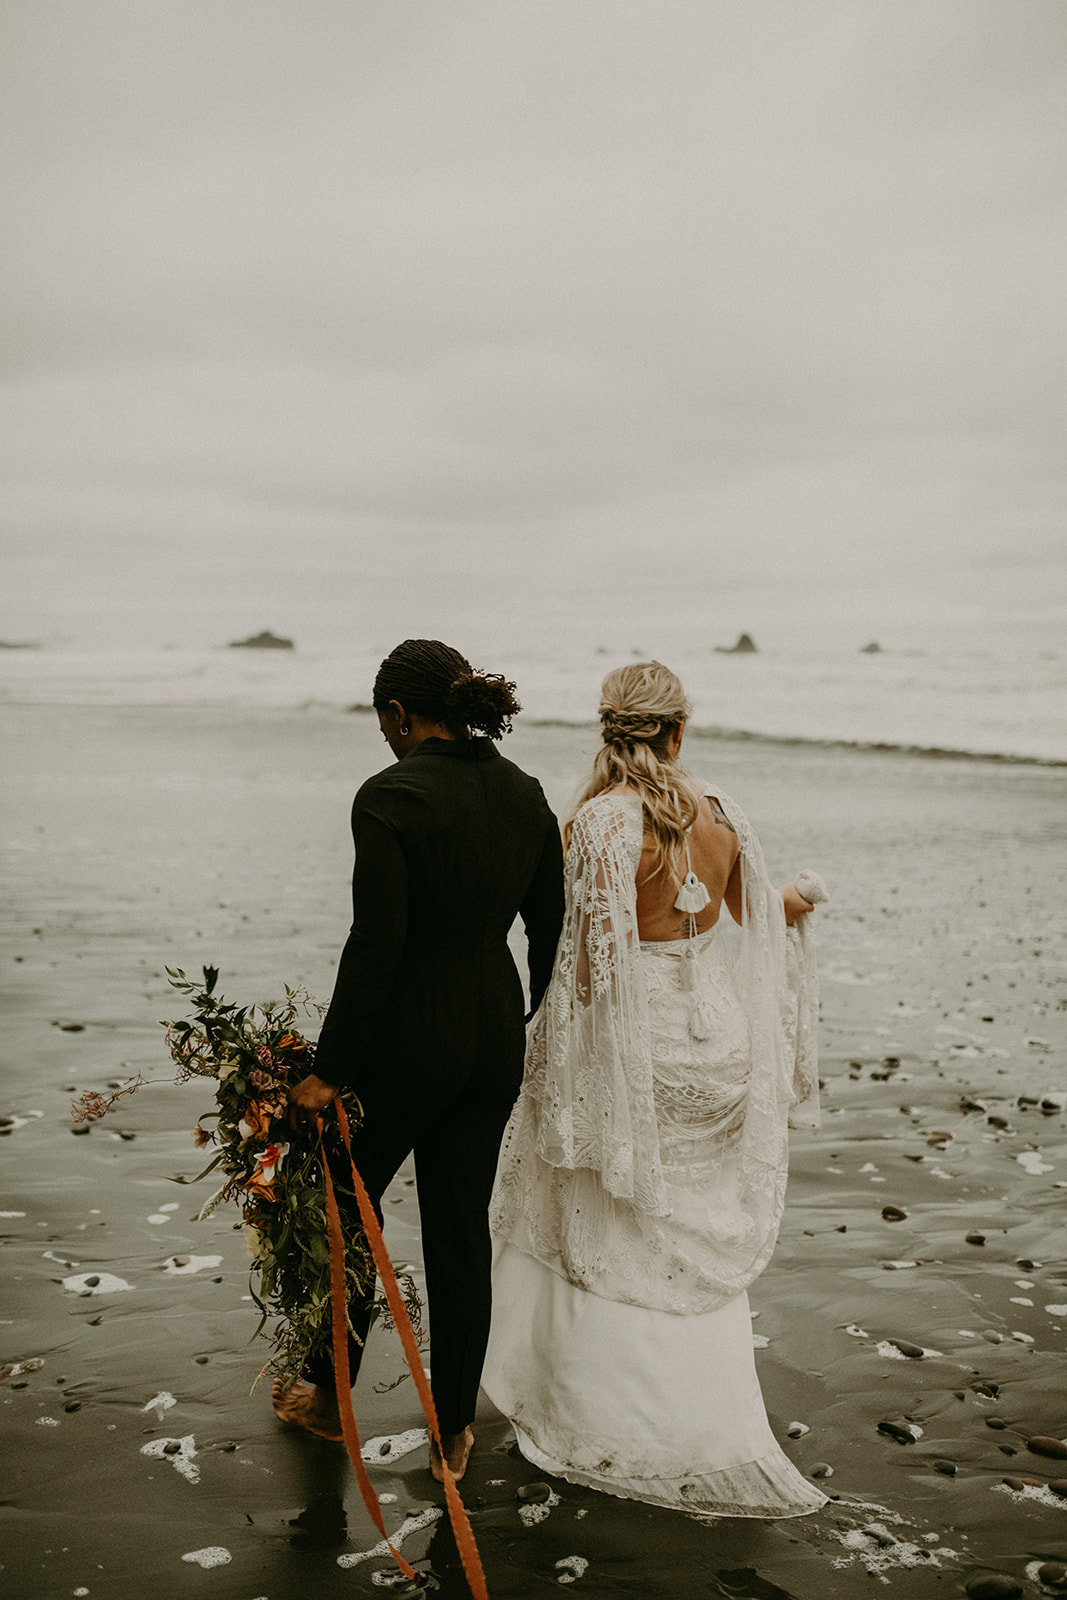 Ruby_Beach_Styled_Elopement_-_Run_Away_with_Me_Elopement_Collective_-_Kamra_Fuller_Photography_-_Portraits-152